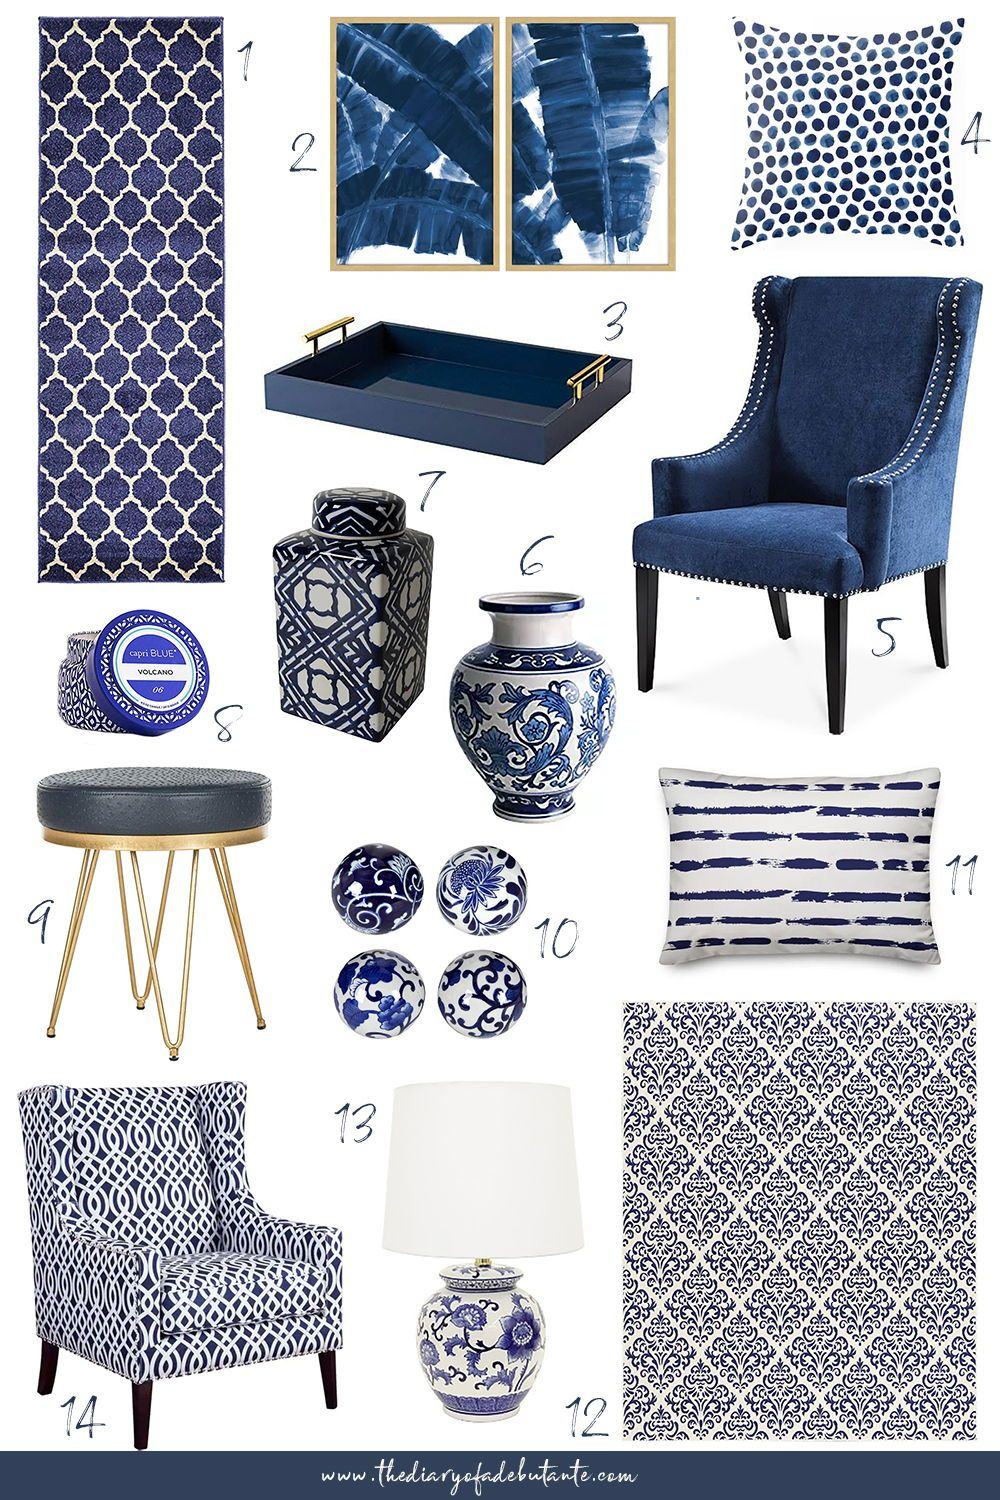 Budget Friendly Blue And White Home Accessories Decor Finds Rug Living Room Affordable